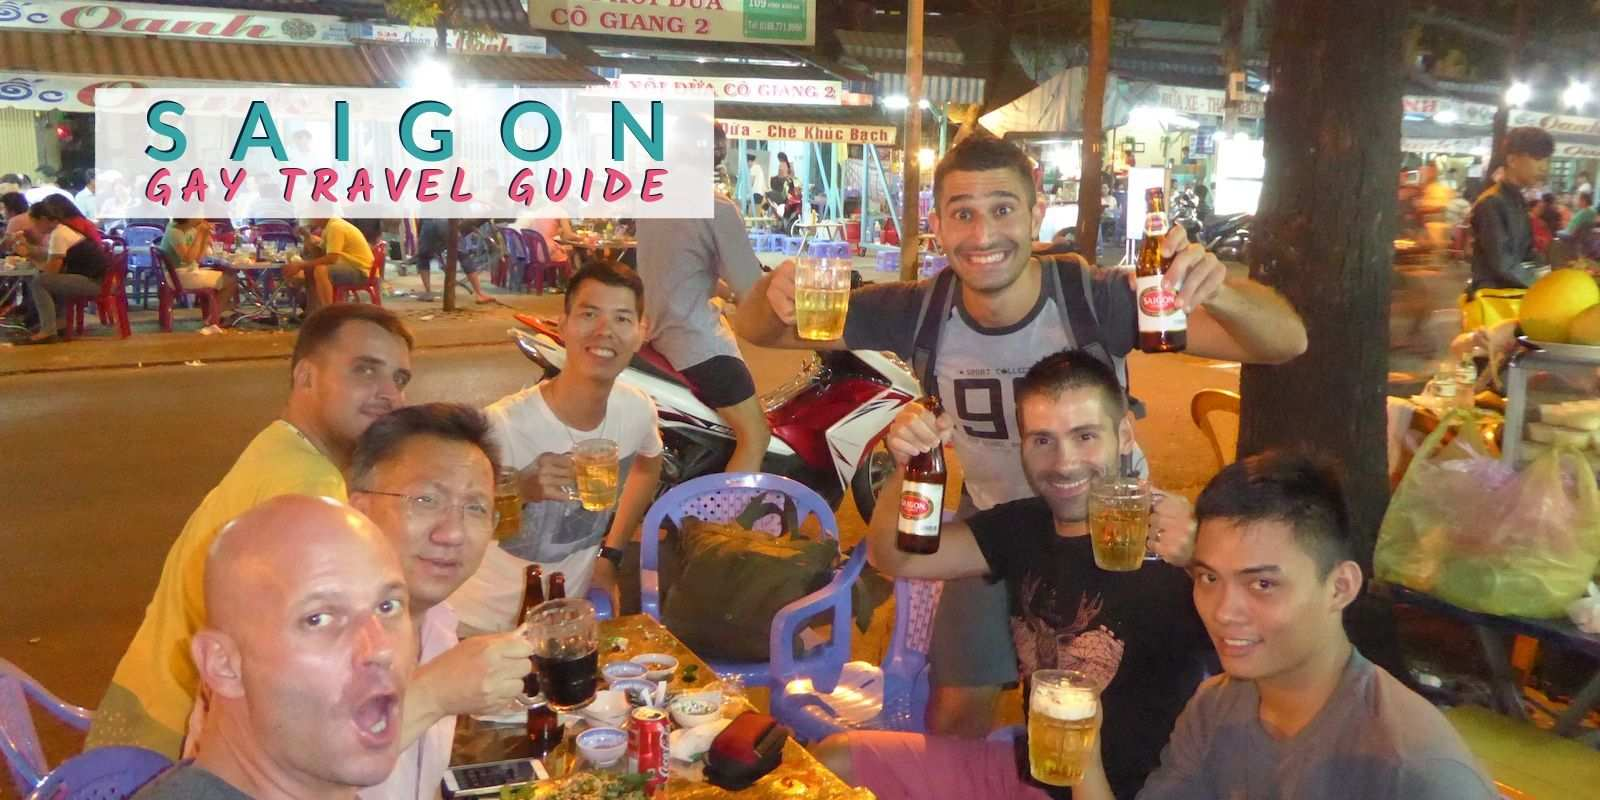 Find out all the best gay hangouts, hotels, bars, clubs and more in Saigon with our complete guide